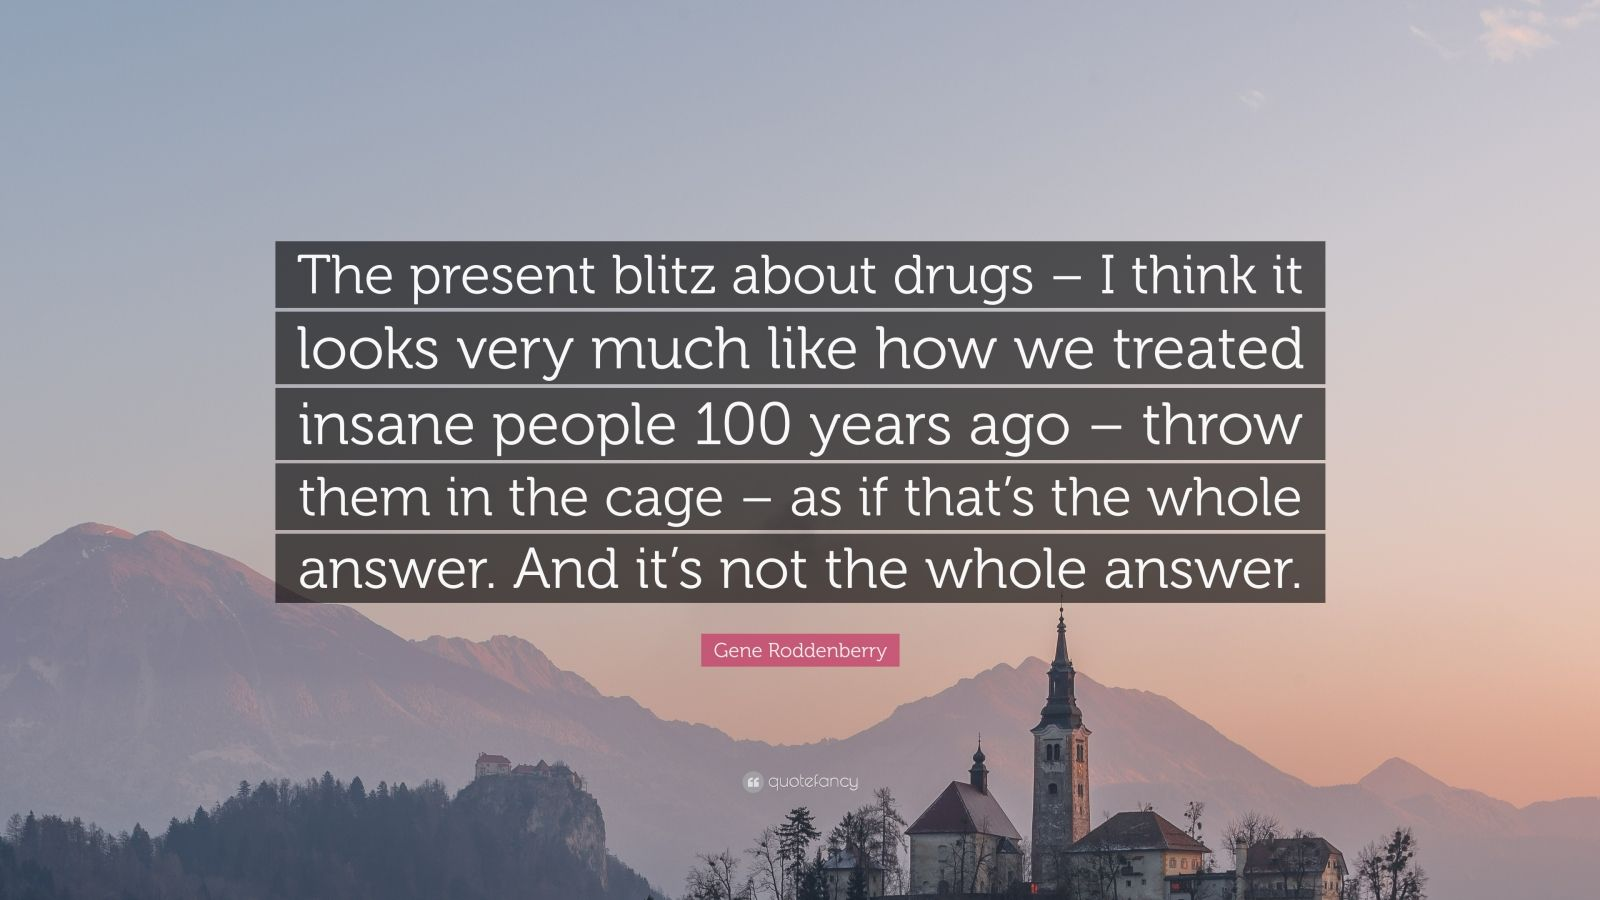 """Gene Roddenberry Quote: """"The present blitz about drugs – I think it looks very much like how we treated insane people 100 years ago – throw them in the cage – as if that's the whole answer. And it's not the whole answer."""""""